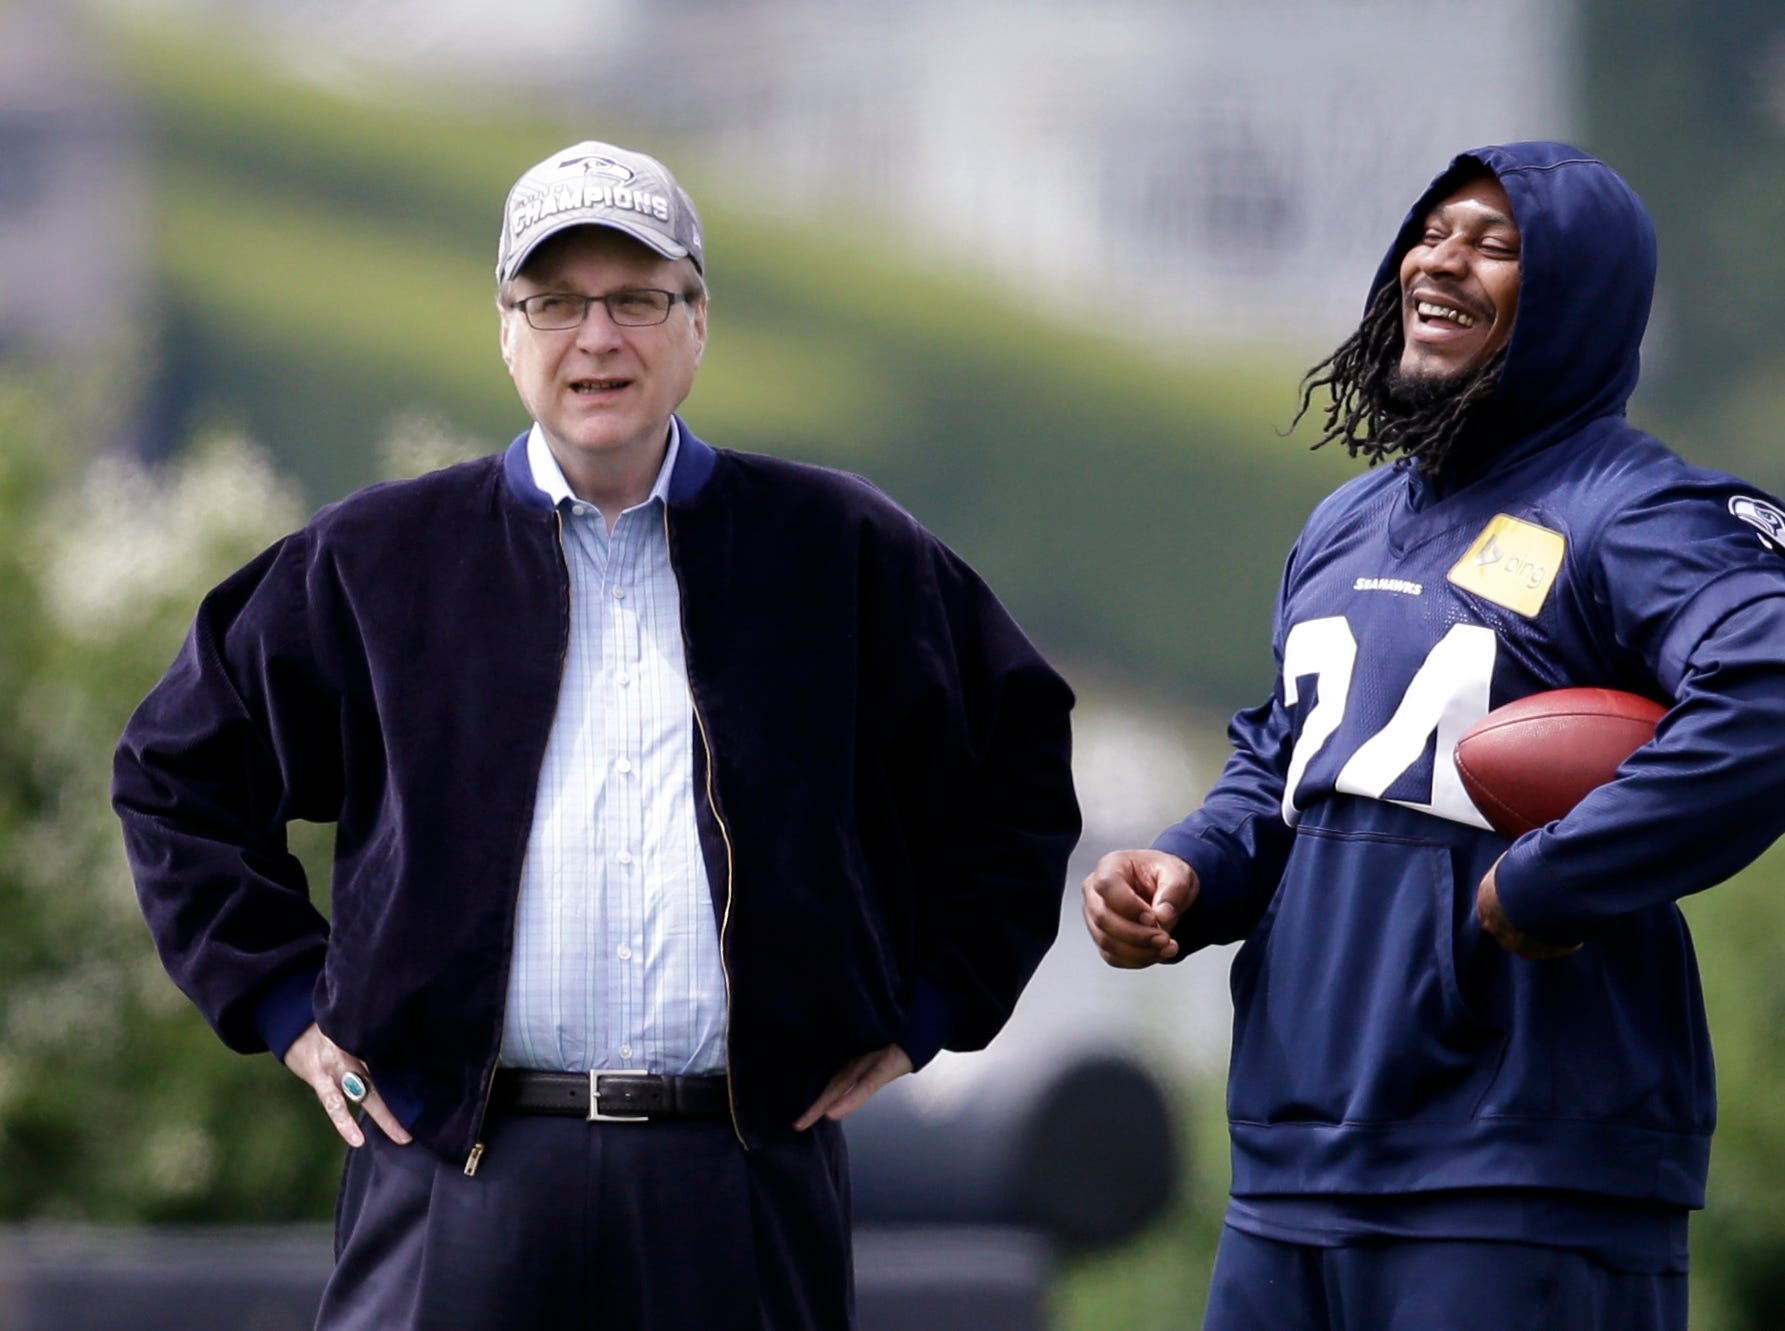 FILE - In this June 18, 2018, file photo, Seattle Seahawks owner Paul Allen, left, talks with running back Marshawn Lynch on the sidelines at an NFL football minicamp practice in Renton, Wash. Paul G. Allen, who co-founded Microsoft with his childhood friend Bill Gates before becoming a billionaire philanthropist, technology investor and owner of the Seattle Seahawks, died in October. Allen's death was among the state's top news stories of 2018. (AP Photo/Elaine Thompson, File)